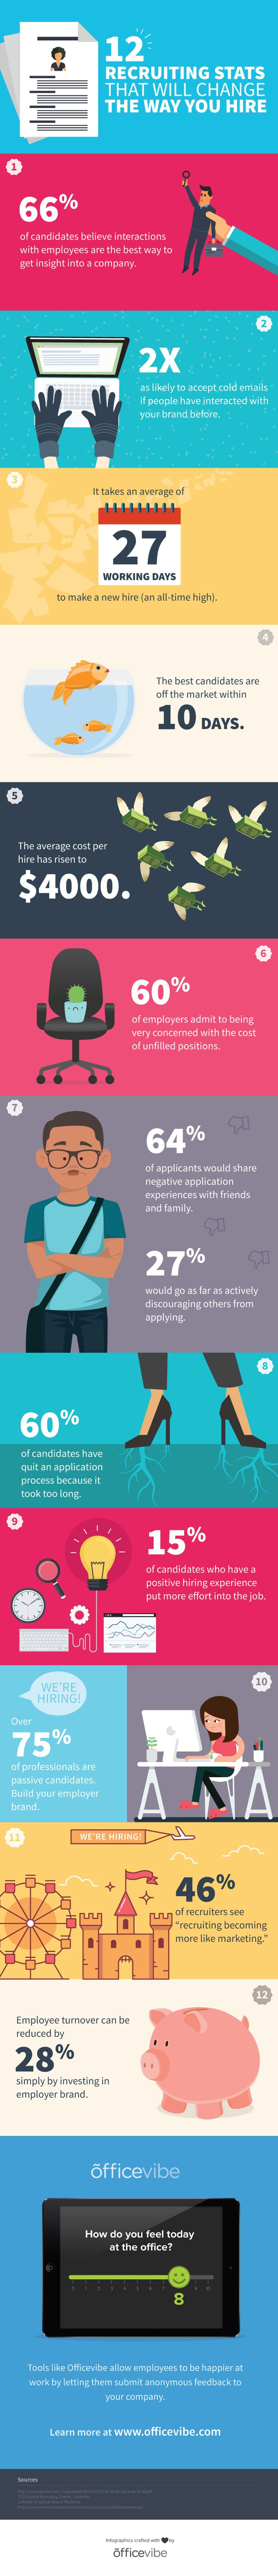 12 Recruiting Stats That Will Change The Way You Hire #Infographic #Career #EmployeeBenefits